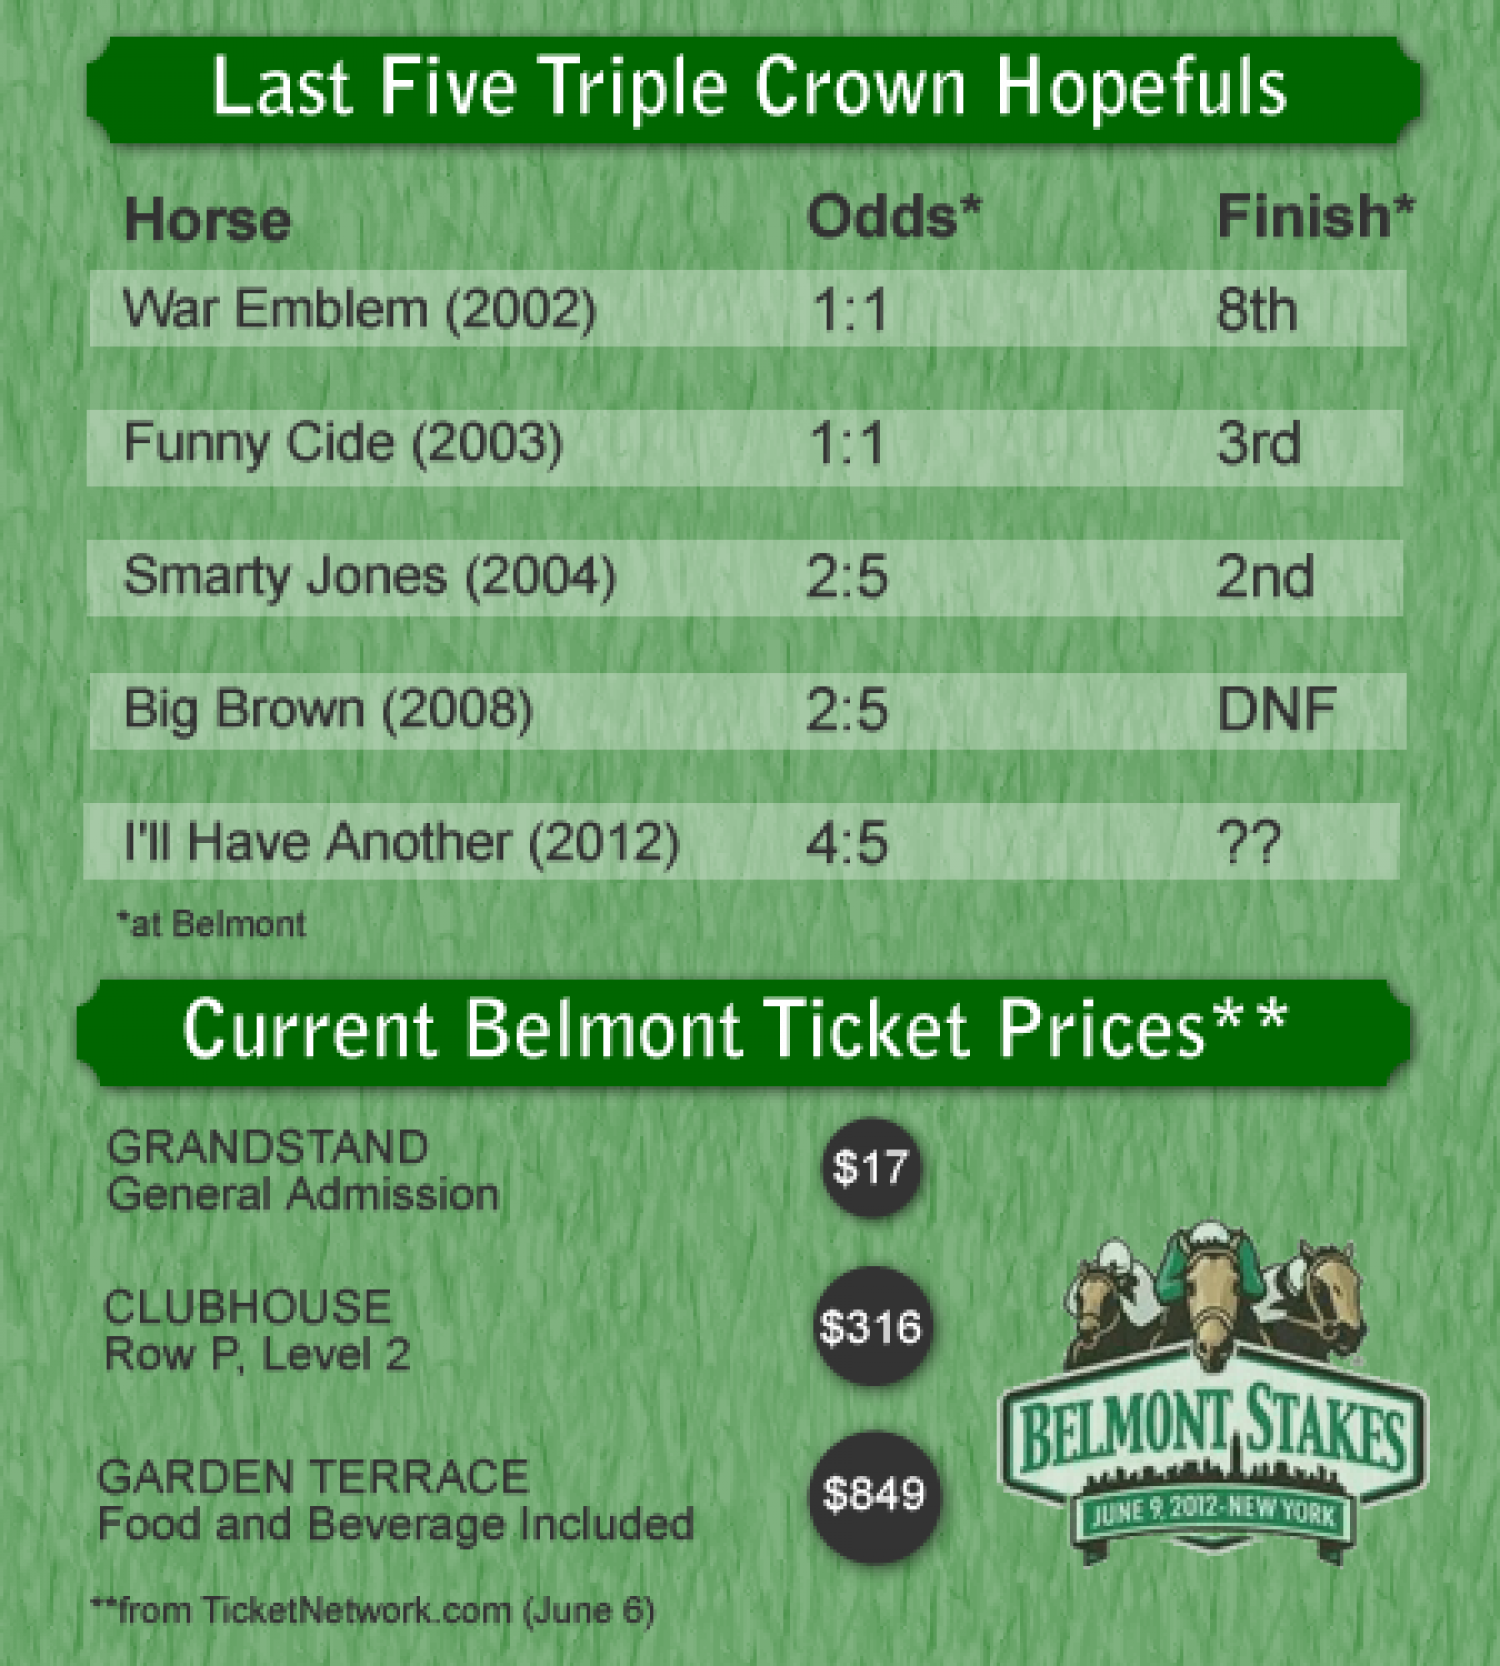 Belmont Stakes Triple Crown Hopefuls & Ticket Prices Infographic